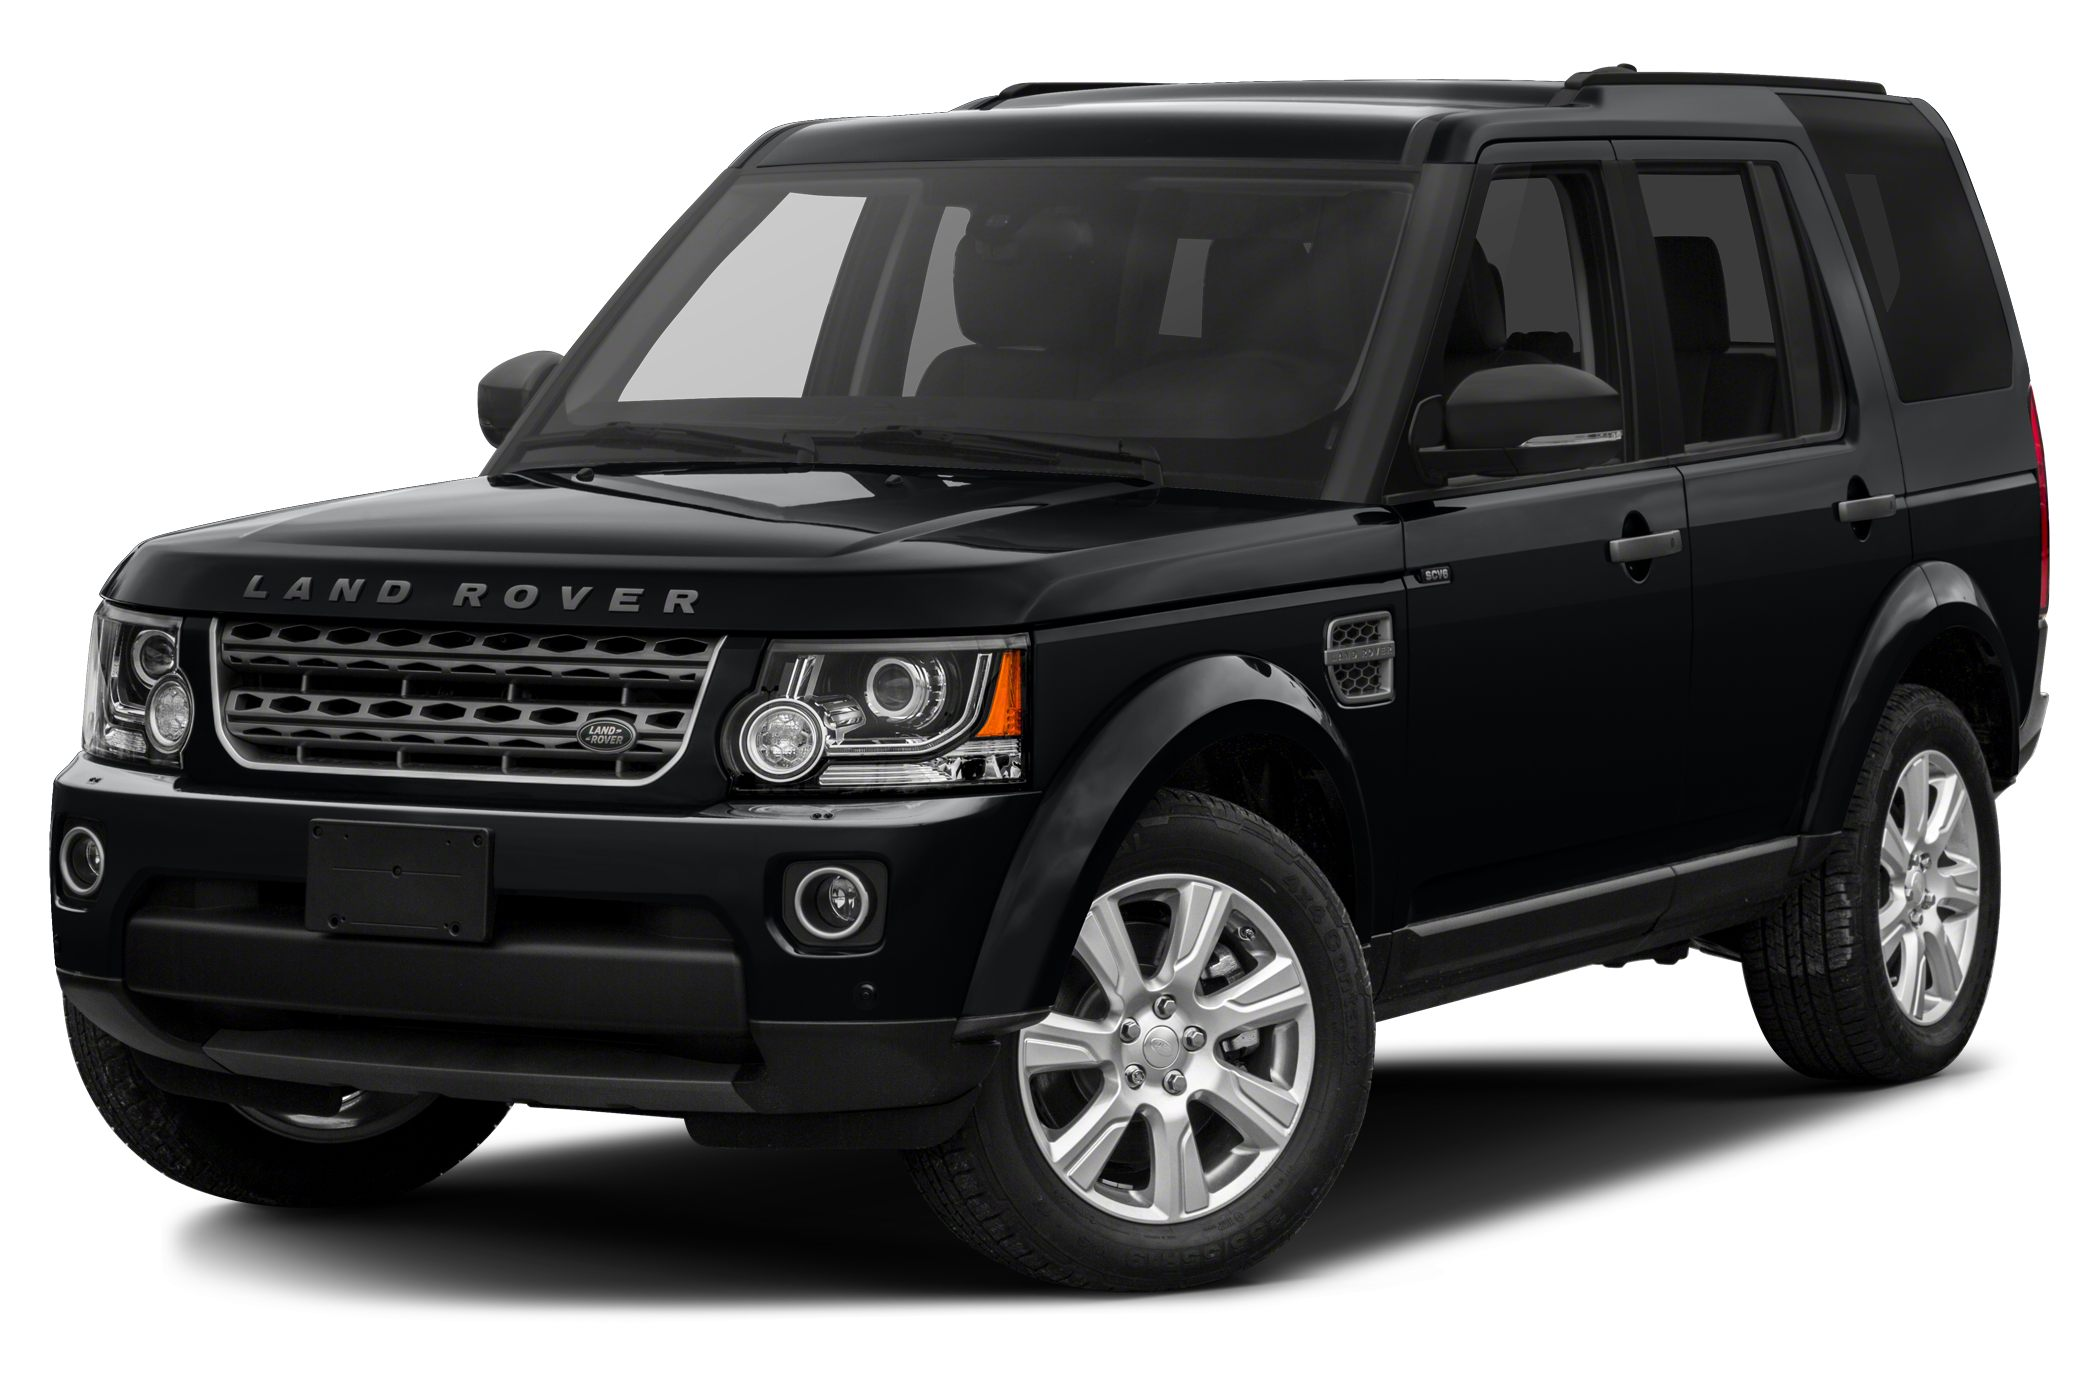 Land Rover Lr3 2013 New Car Updates 2019 2020 1948 Chevy Wiring Diagram 2014 Lr4 Autoblog